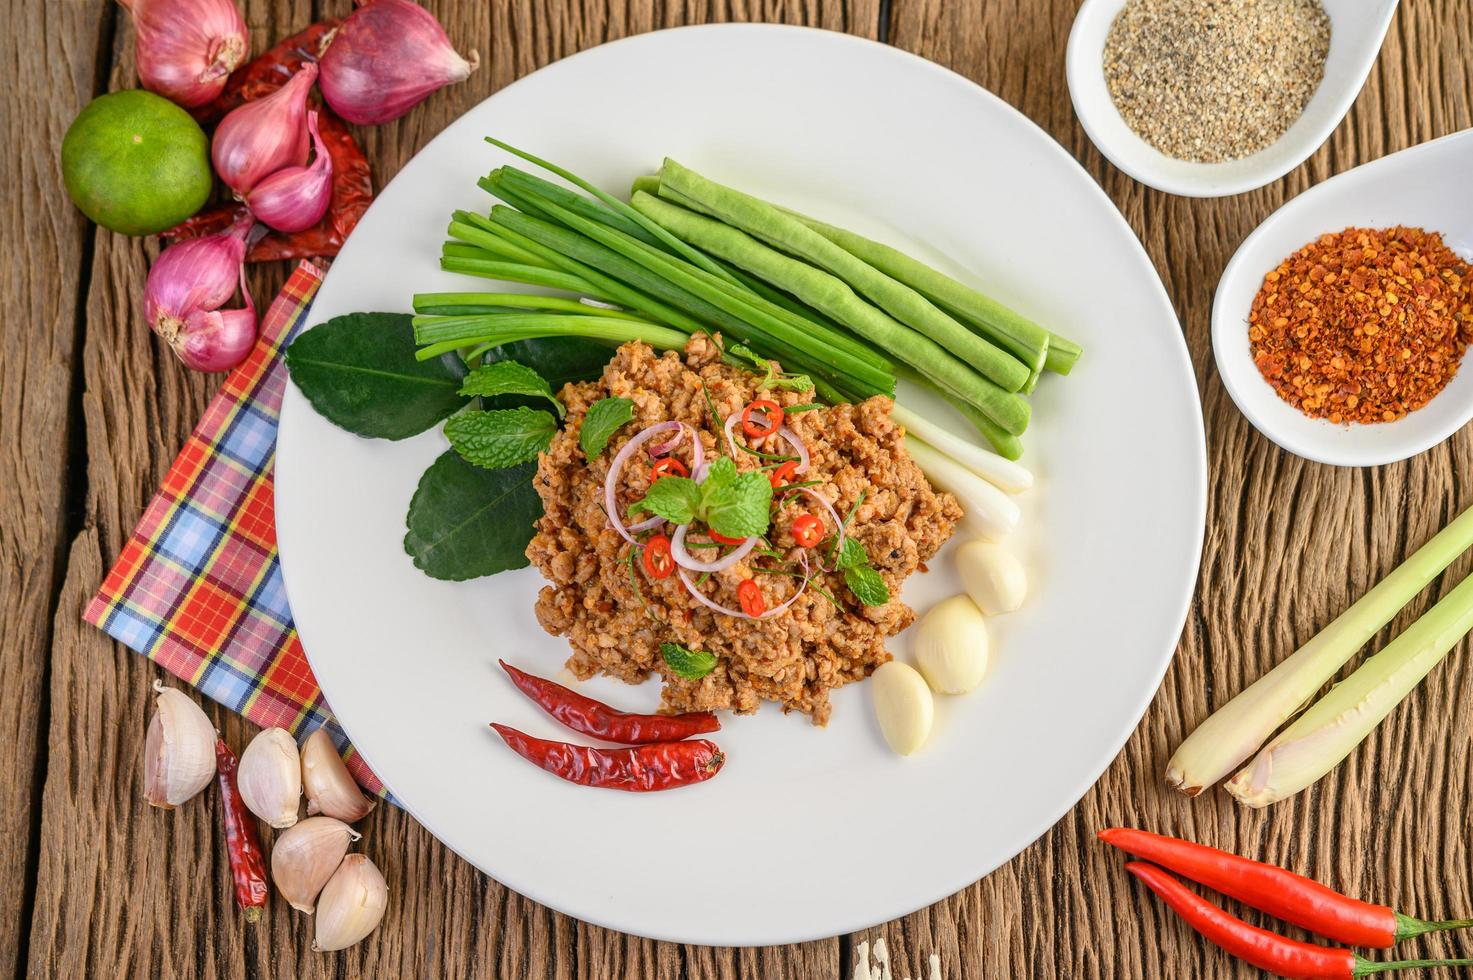 Minced pork salad with spices on a wooden table photo